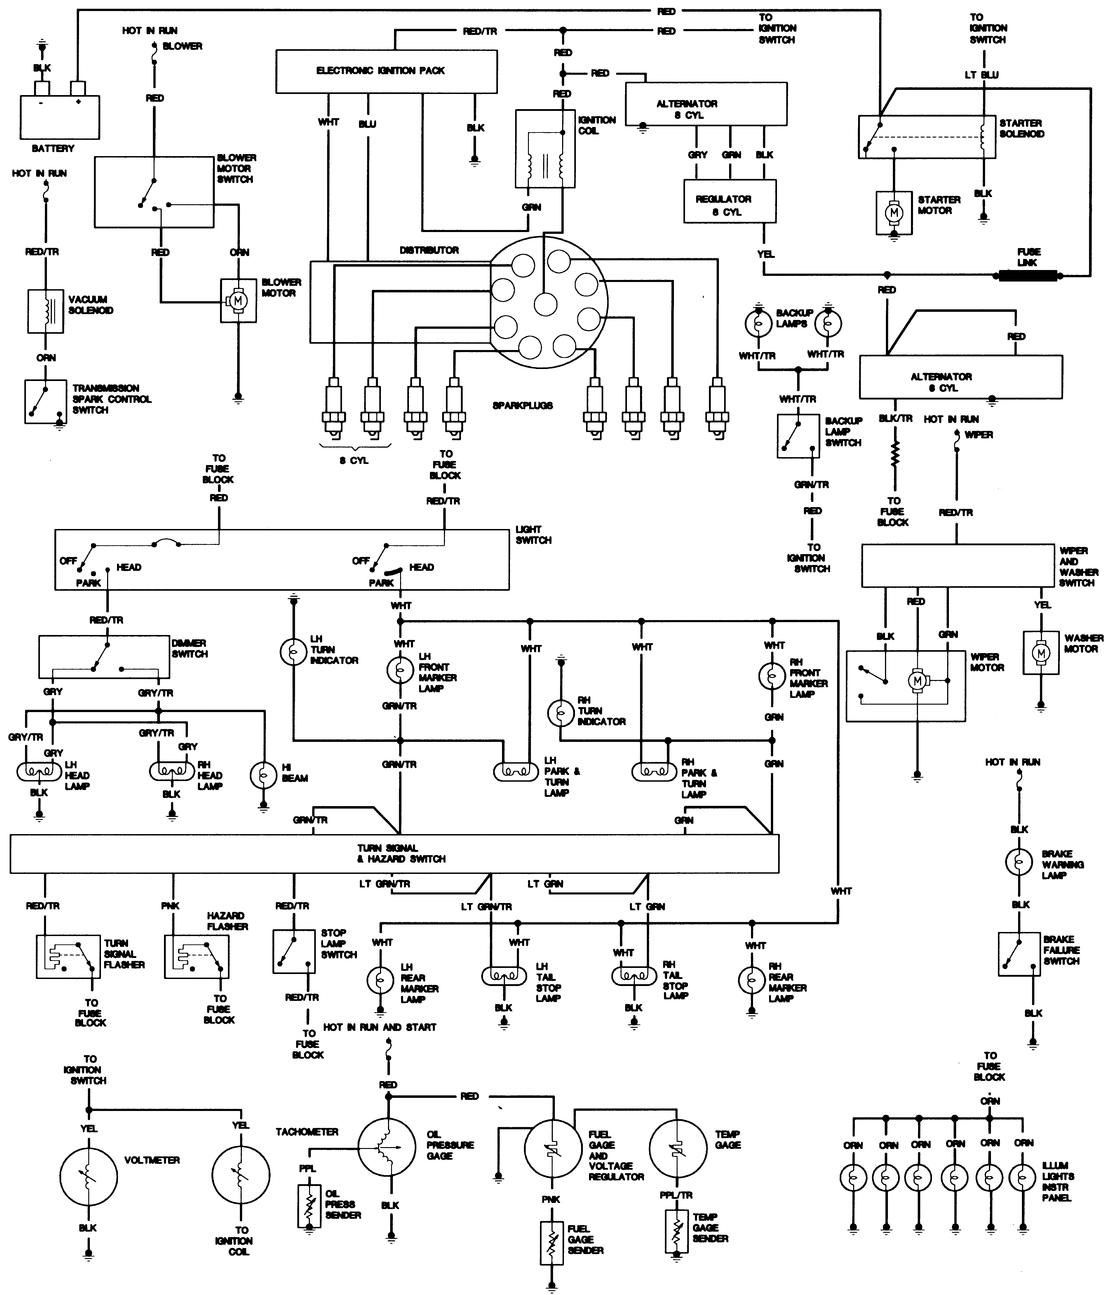 1981 jeep cj7 wiring diagram wiring library diagram a21980 jeep cj7 wiring diagram ngs wiring diagram [ 1111 x 1295 Pixel ]